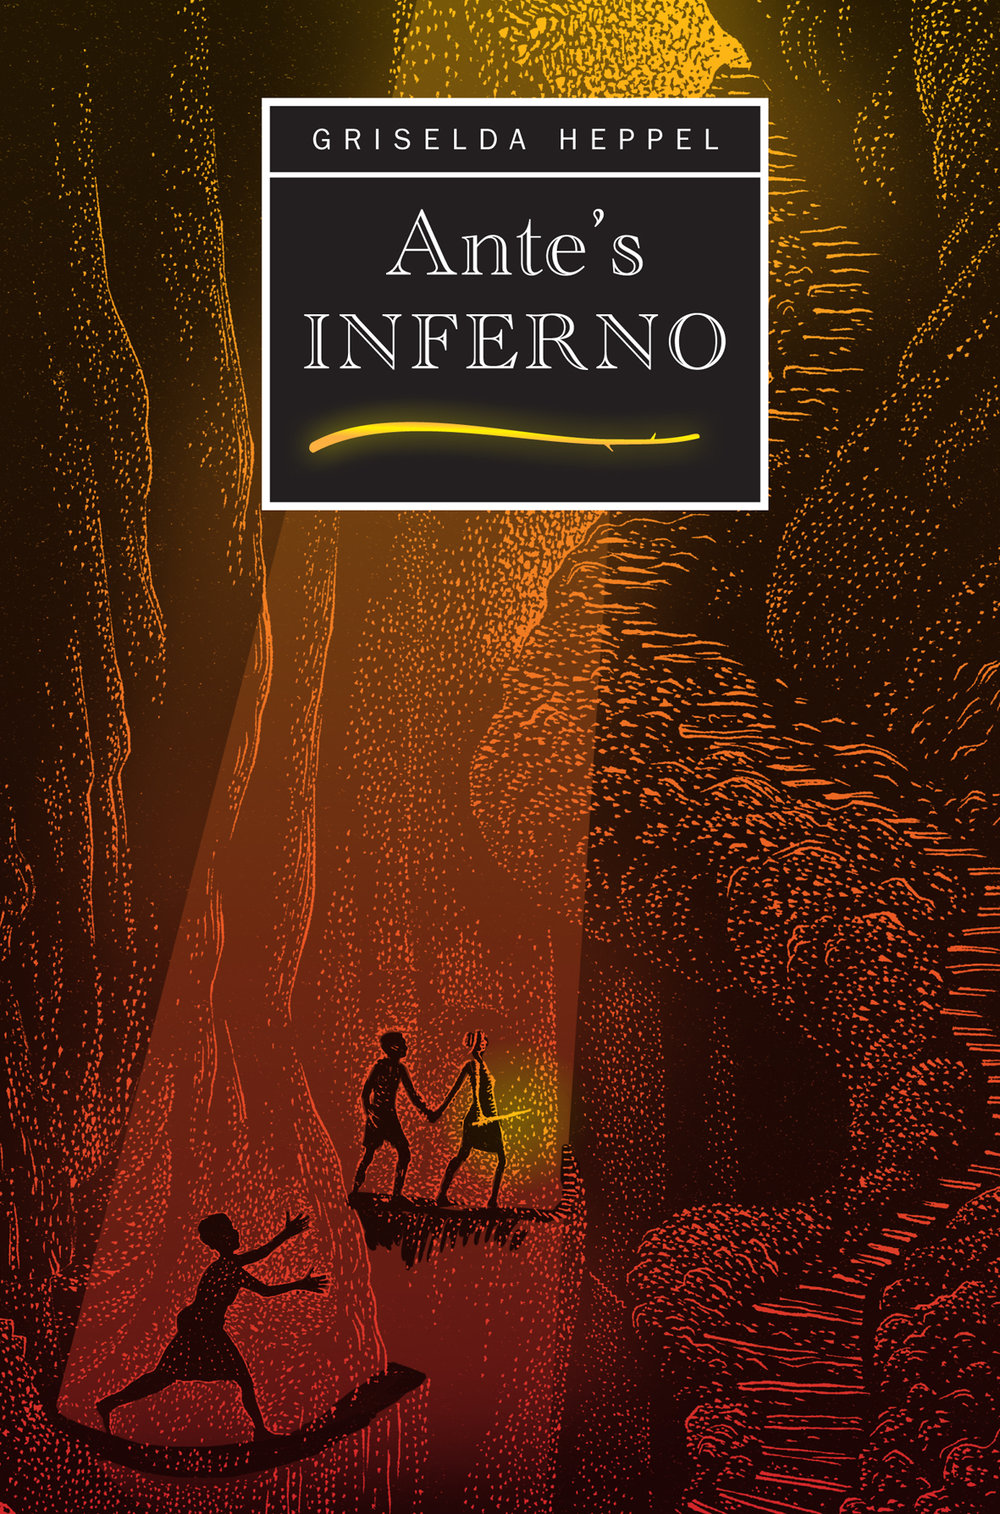 Ante's Inferno  can be obtained through all good bookshops, as well as direct from the publishers, Matador, and through Amazon.  An E book version is also available.